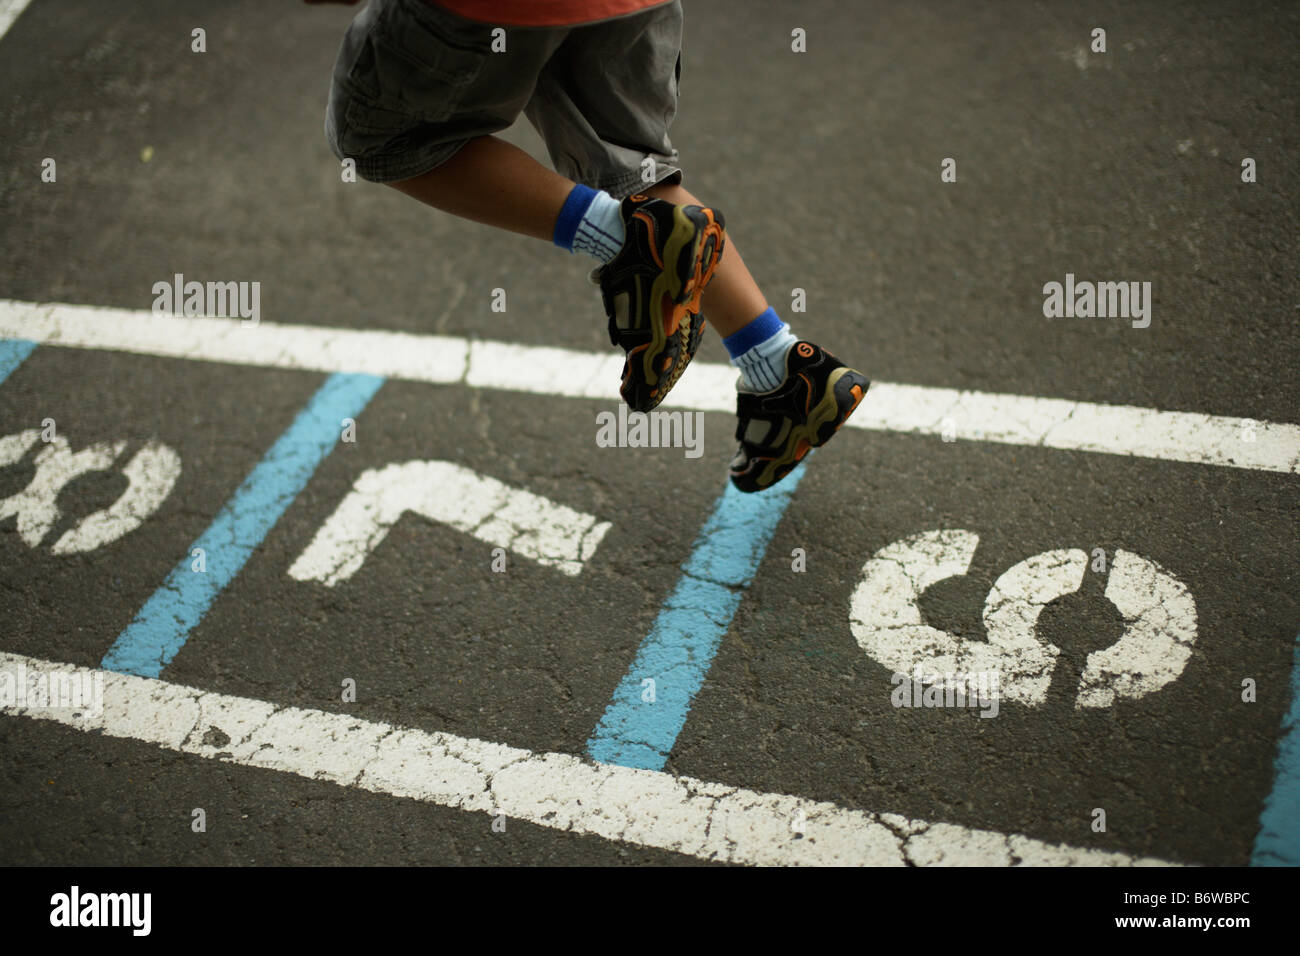 Children play hopscotch in a school playground - Stock Image